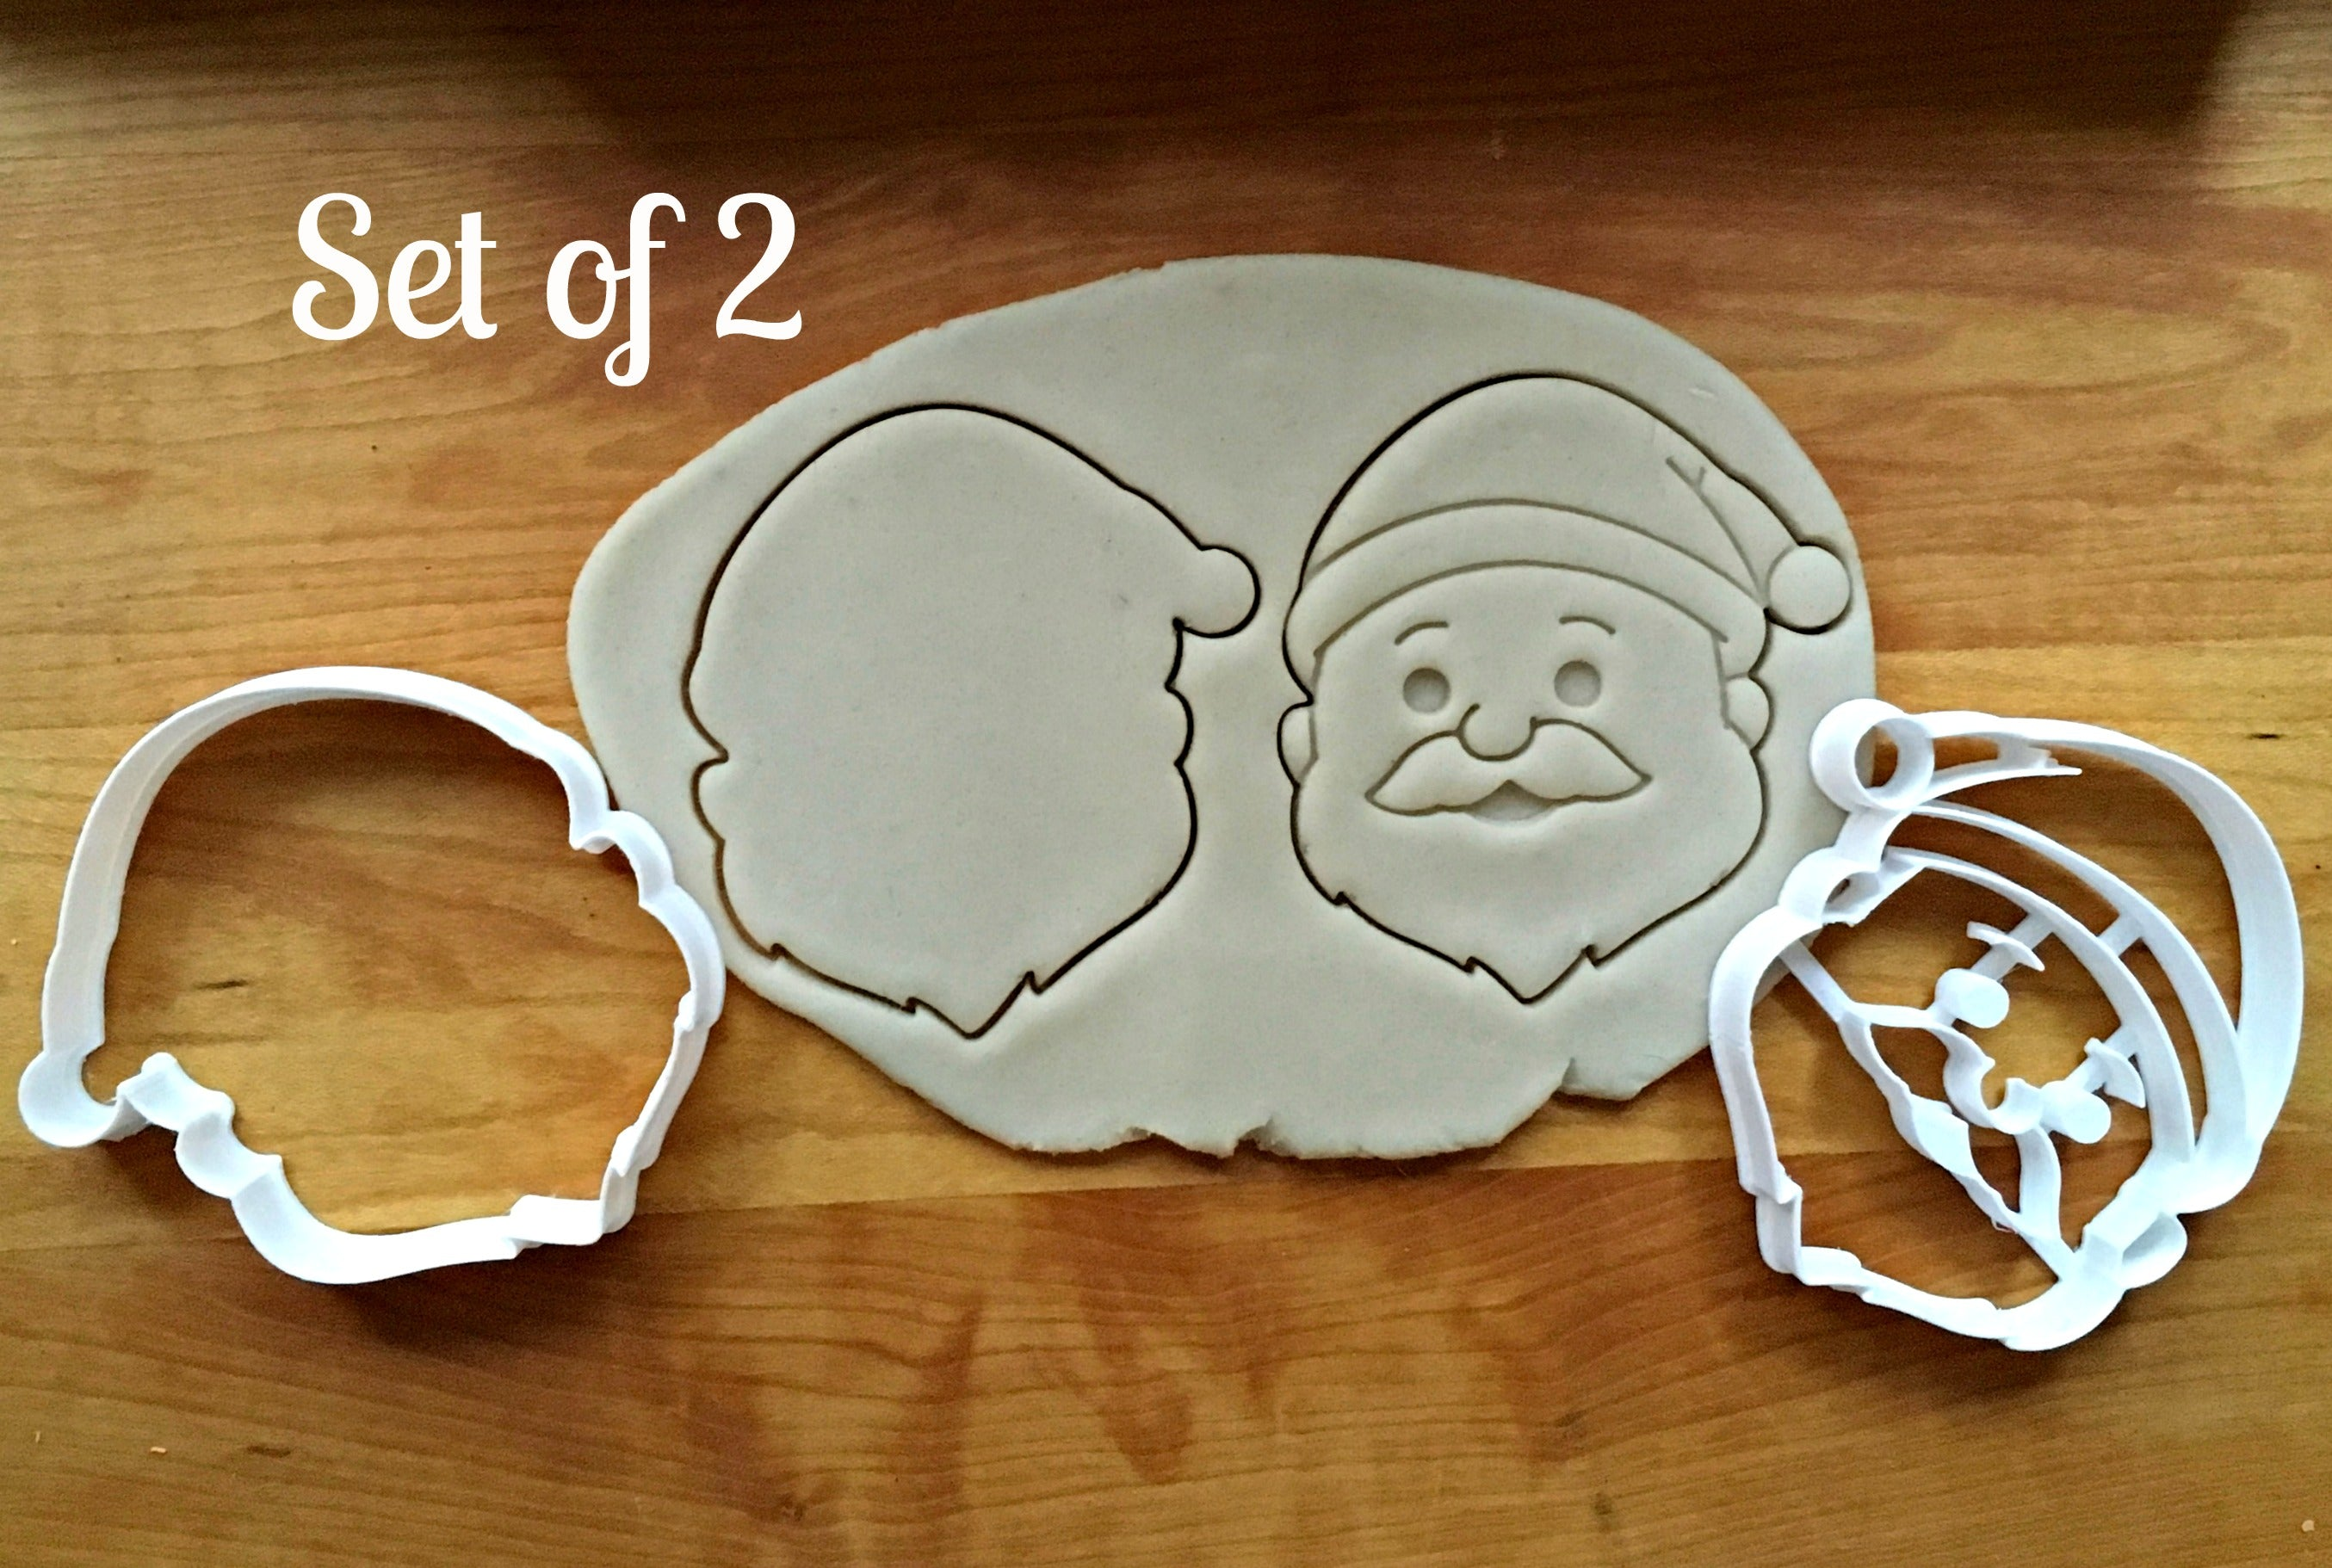 Set of 2 Santa Cookie Cutters/Dishwasher Safe